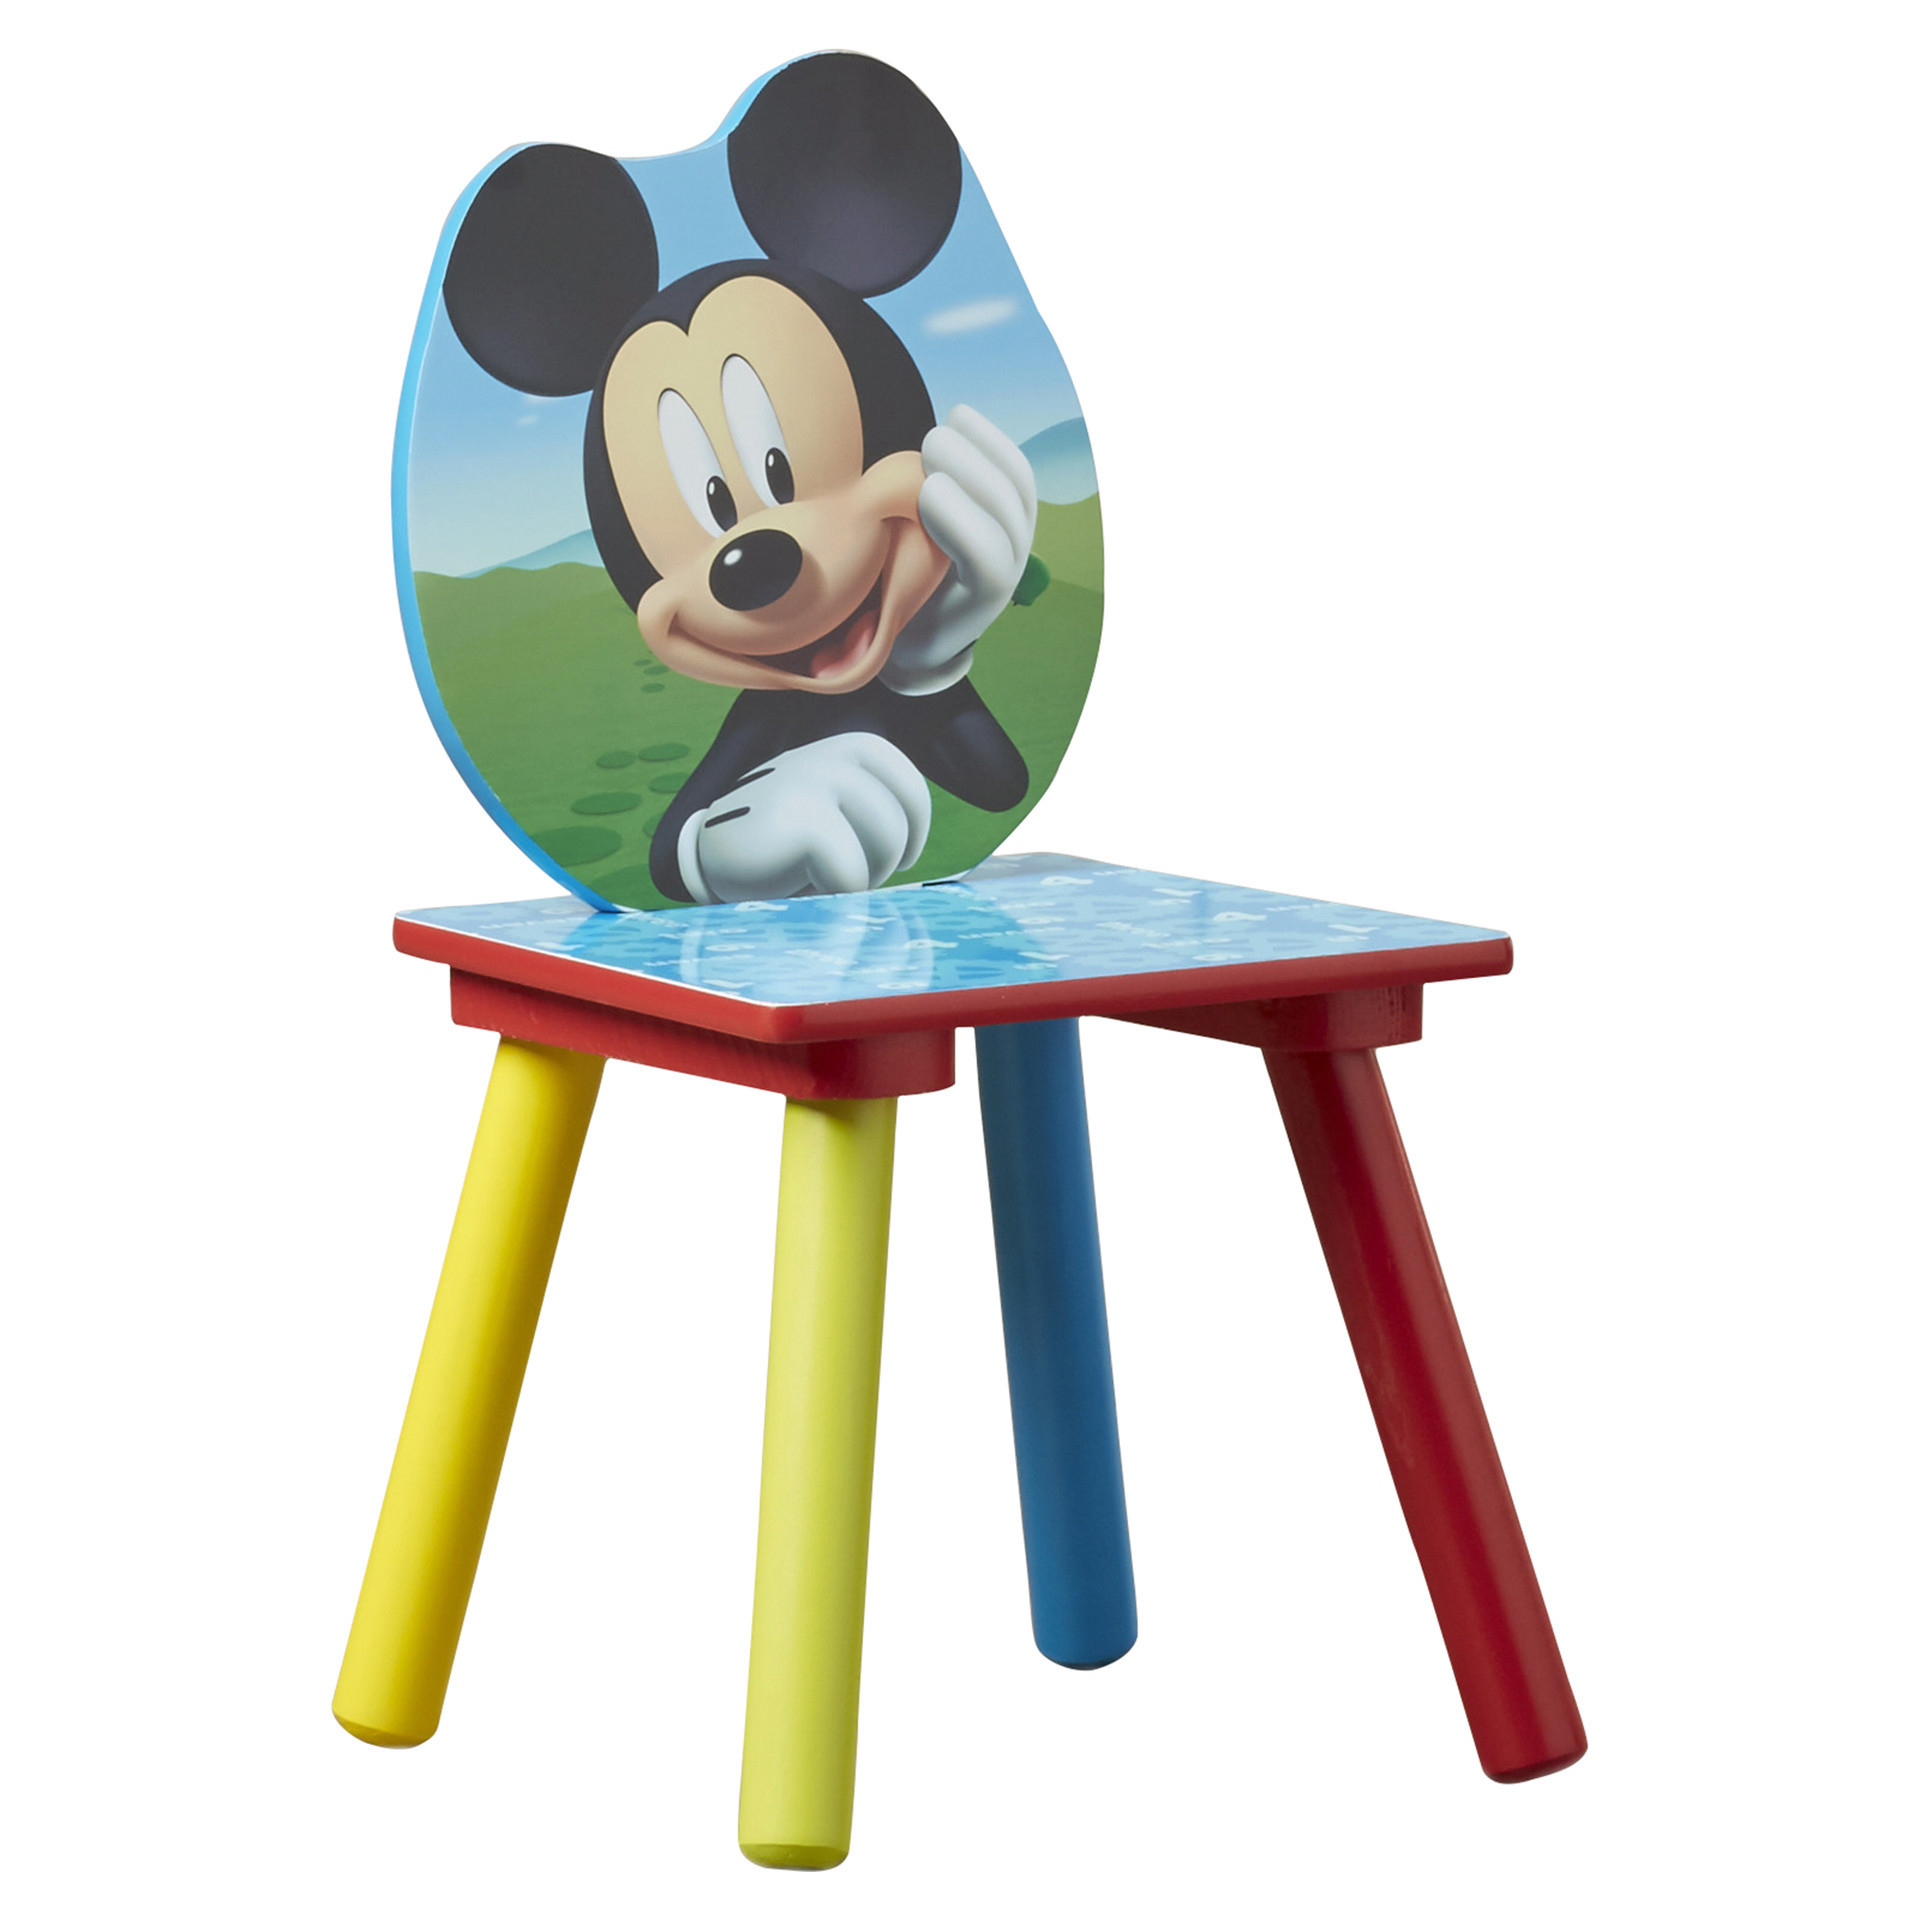 Best ideas about Mickey's Birthday Party . Save or Pin Delta Children Mickey Mouse Kids 3 Piece Table And Chair Now.